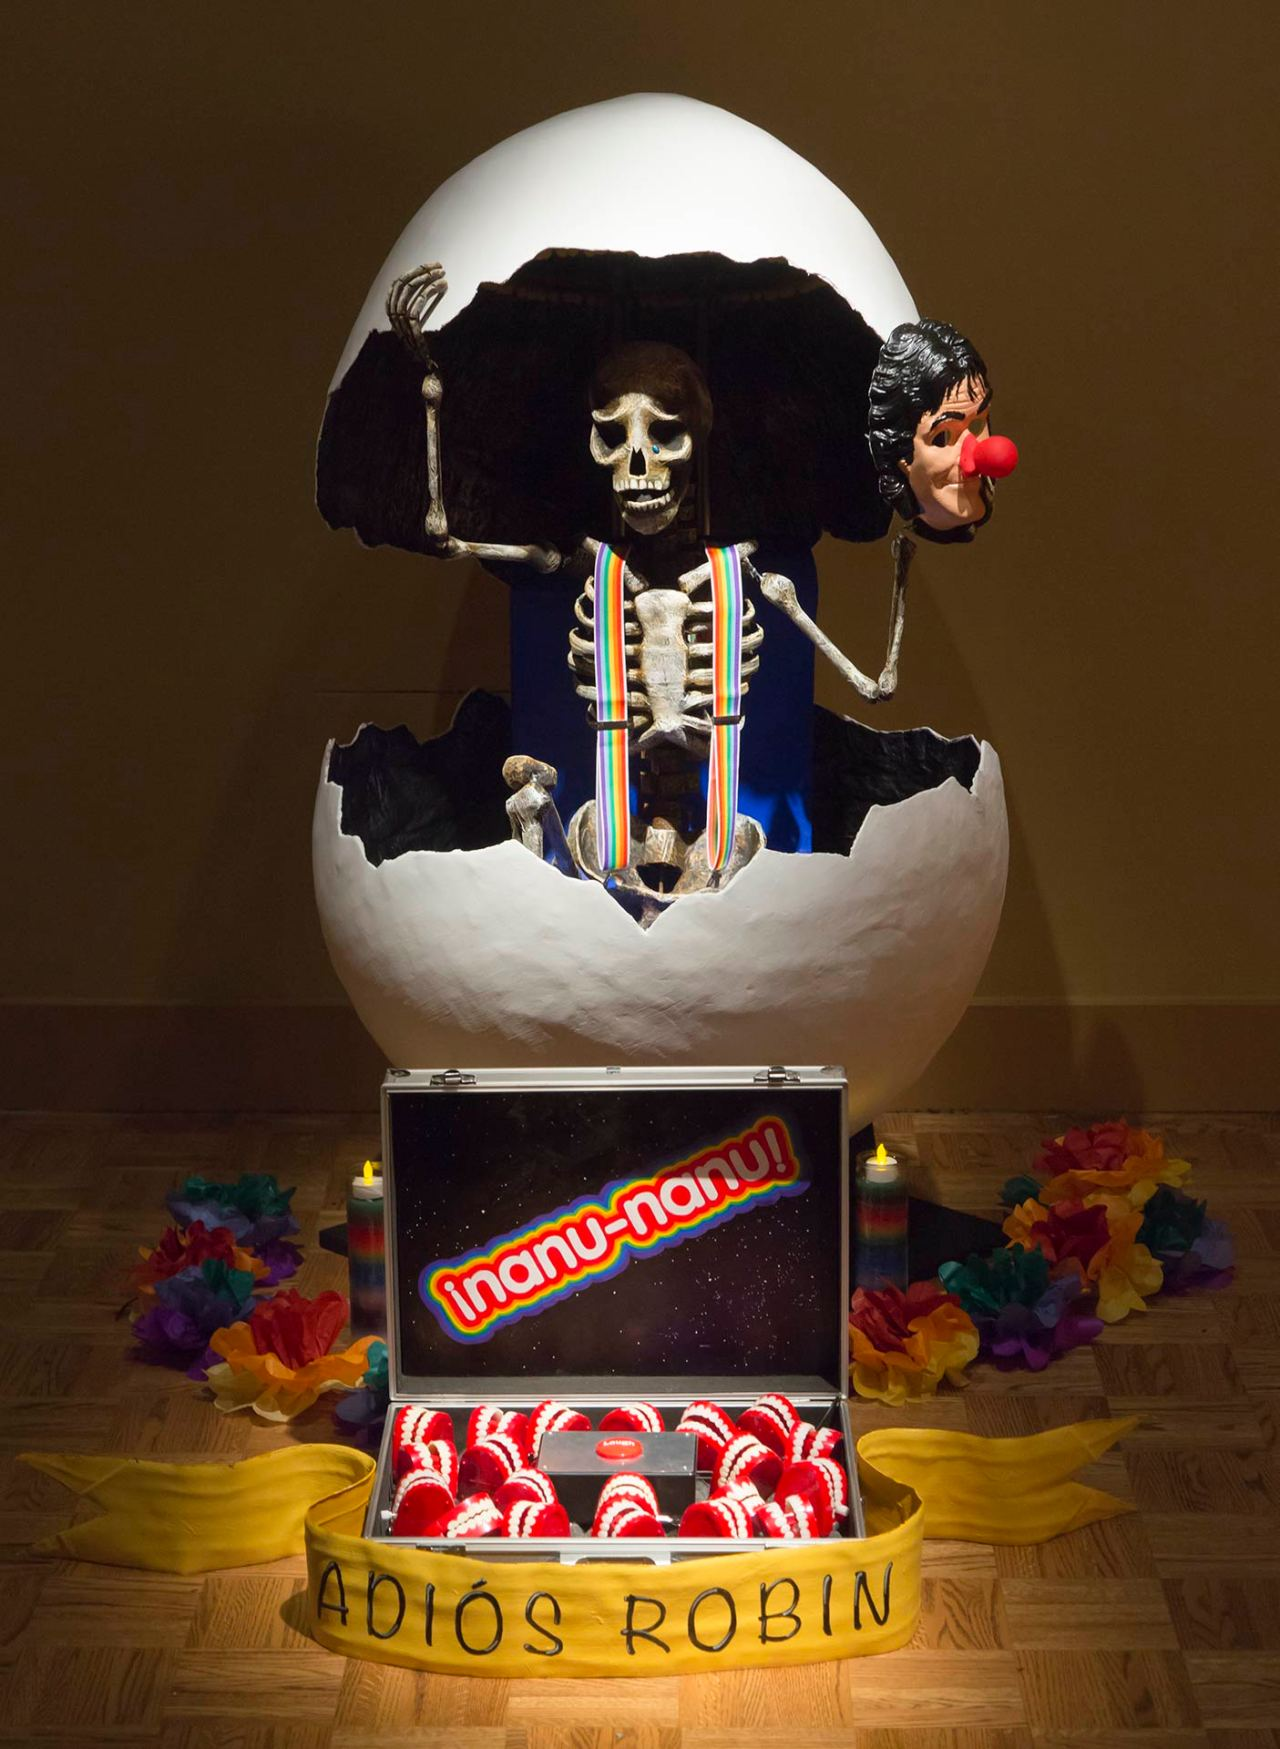 Ofrenda to Robin Williams, featured at the Detroit Institute of Arts in 2014, by Steve Miller and Alex Goecke